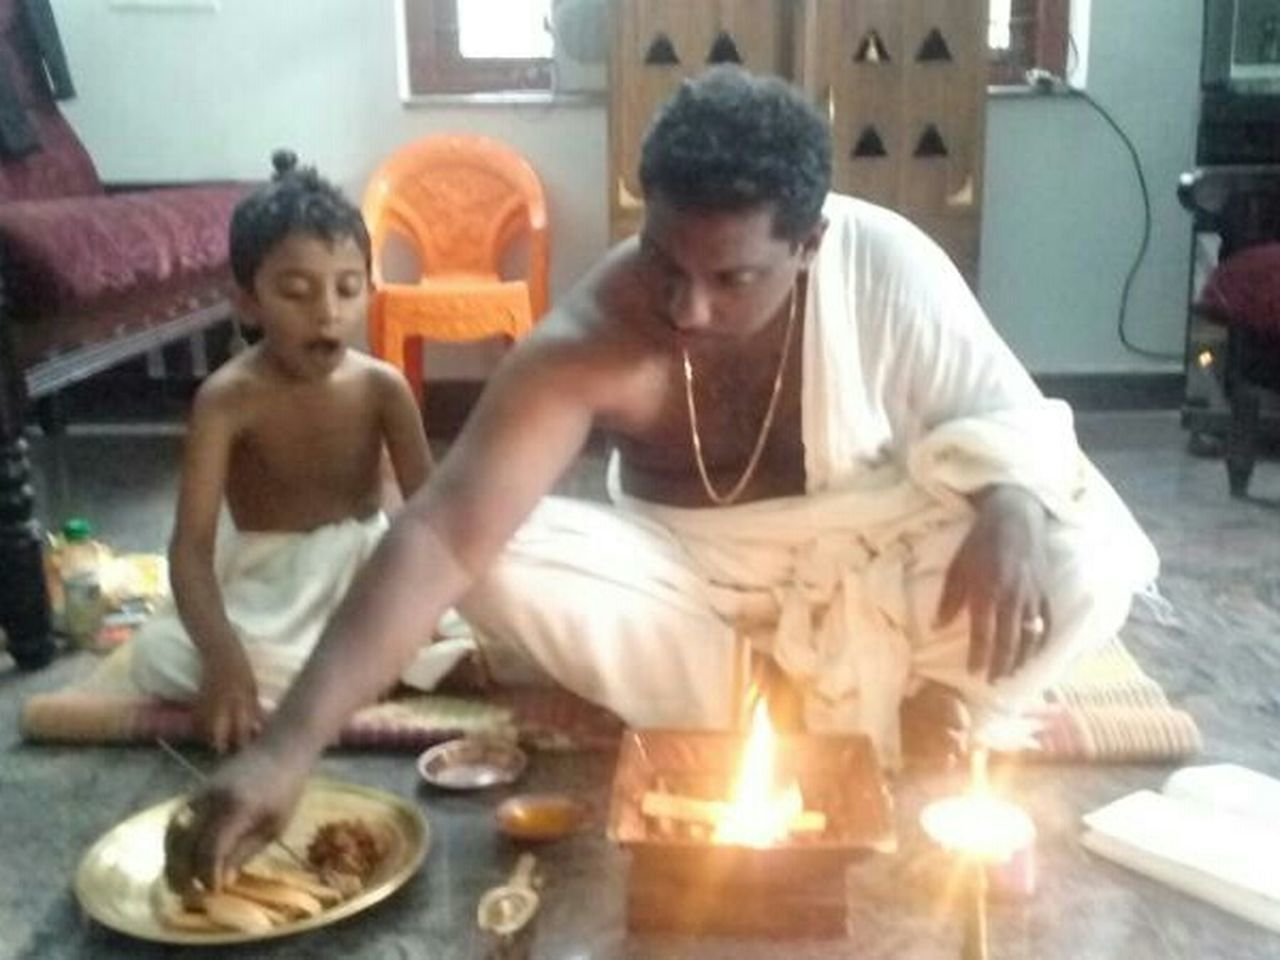 two people, togetherness, adult, adults only, people, sitting, domestic life, young adult, flame, playing, wellbeing, indoors, full length, day, food, only men, friendship